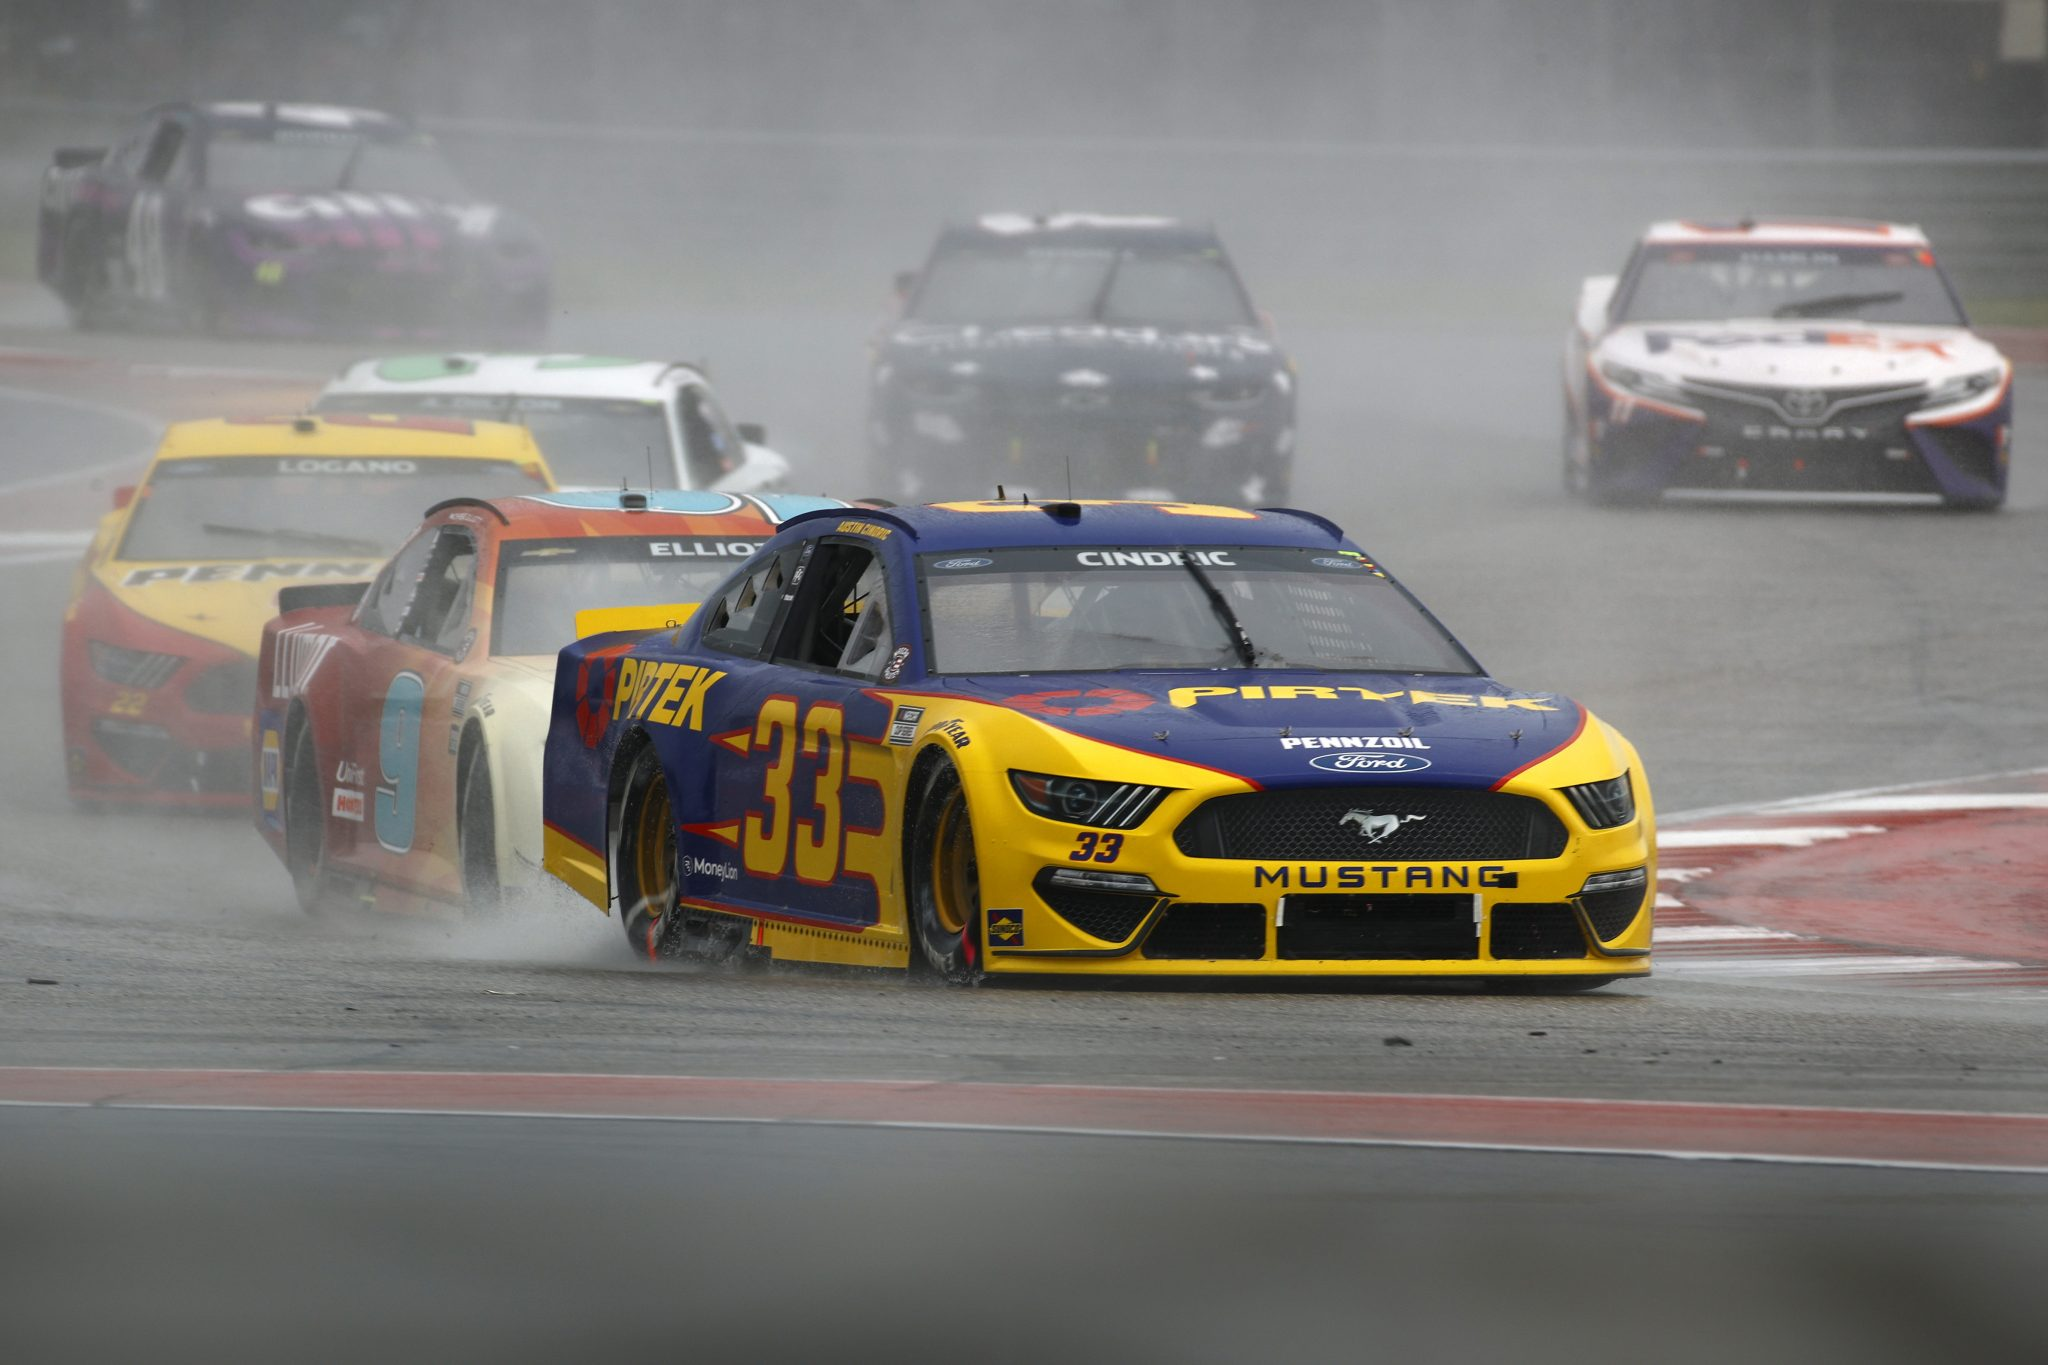 AUSTIN, TEXAS - MAY 23: Austin Cindric, driver of the #33 Pirtek Ford, drives during the NASCAR Cup Series EchoPark Texas Grand Prix at Circuit of The Americas on May 23, 2021 in Austin, Texas. (Photo by Jared C. Tilton/Getty Images)   Getty Images